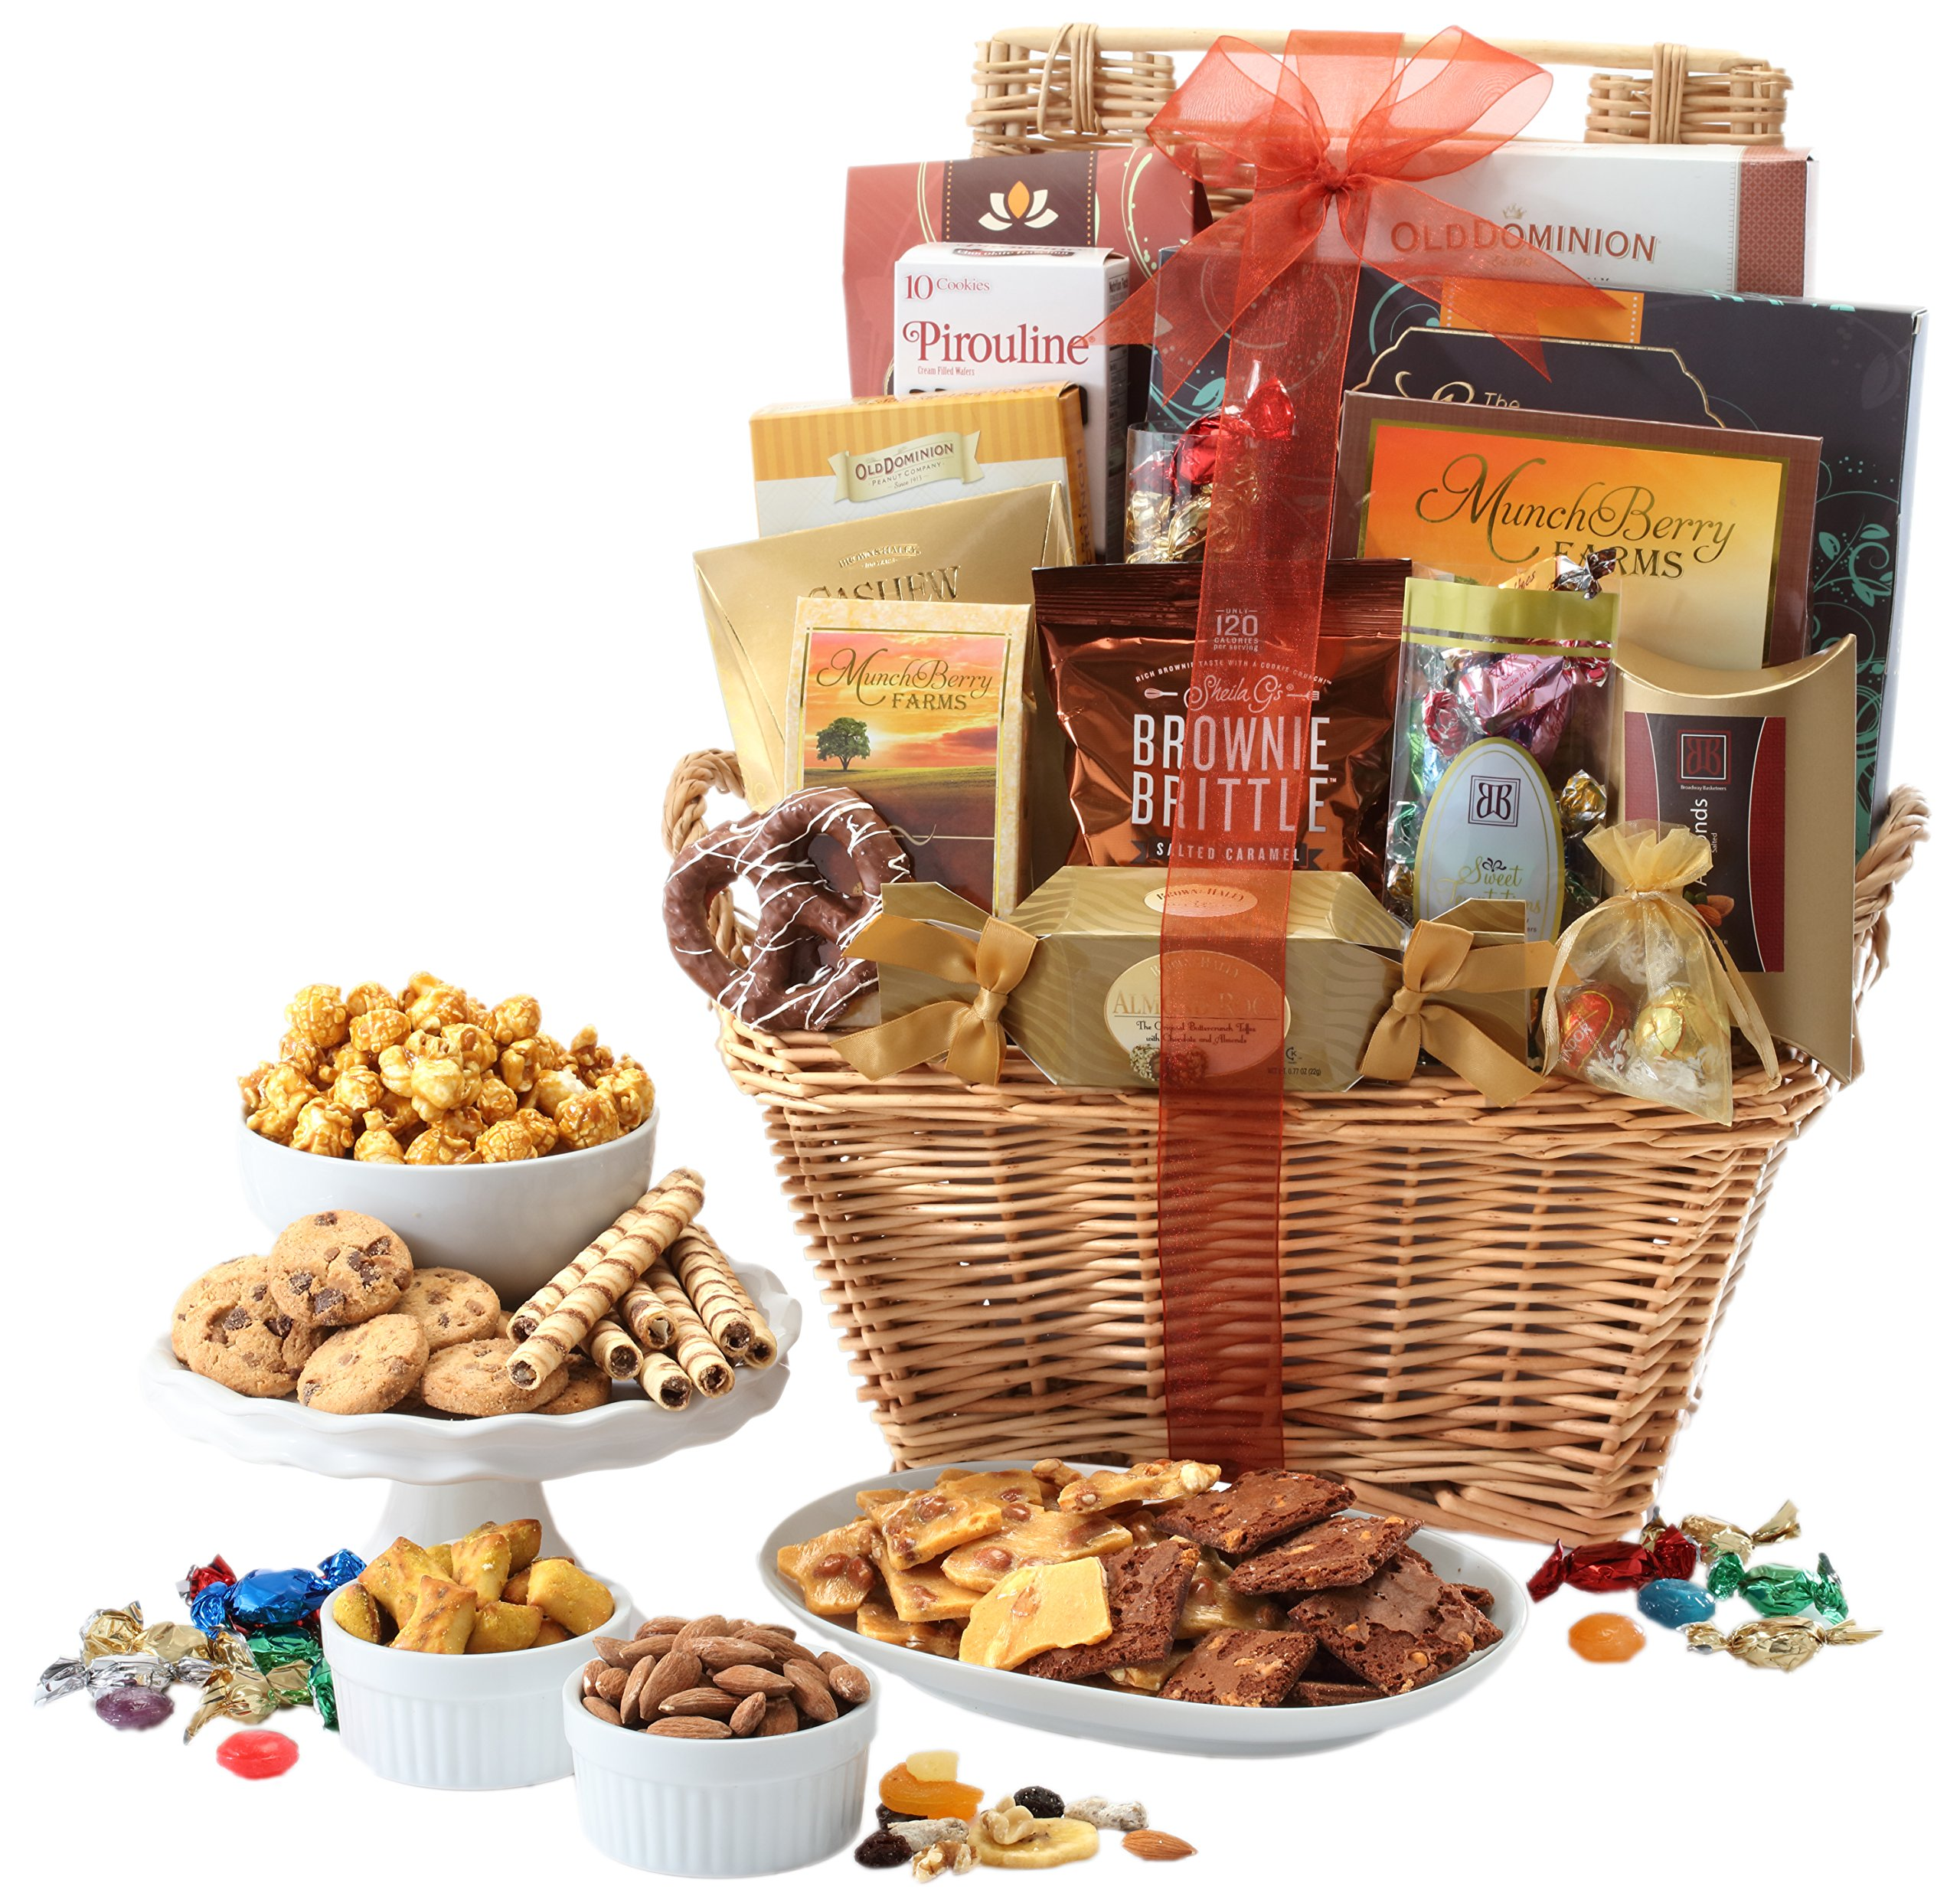 Broadway Basketeers Gift Basket Deluxe with Chocolates, Lindt Truffles, Assorted Nuts, Gourmet Cookies, Seasoned Nuts, Sweets and More.